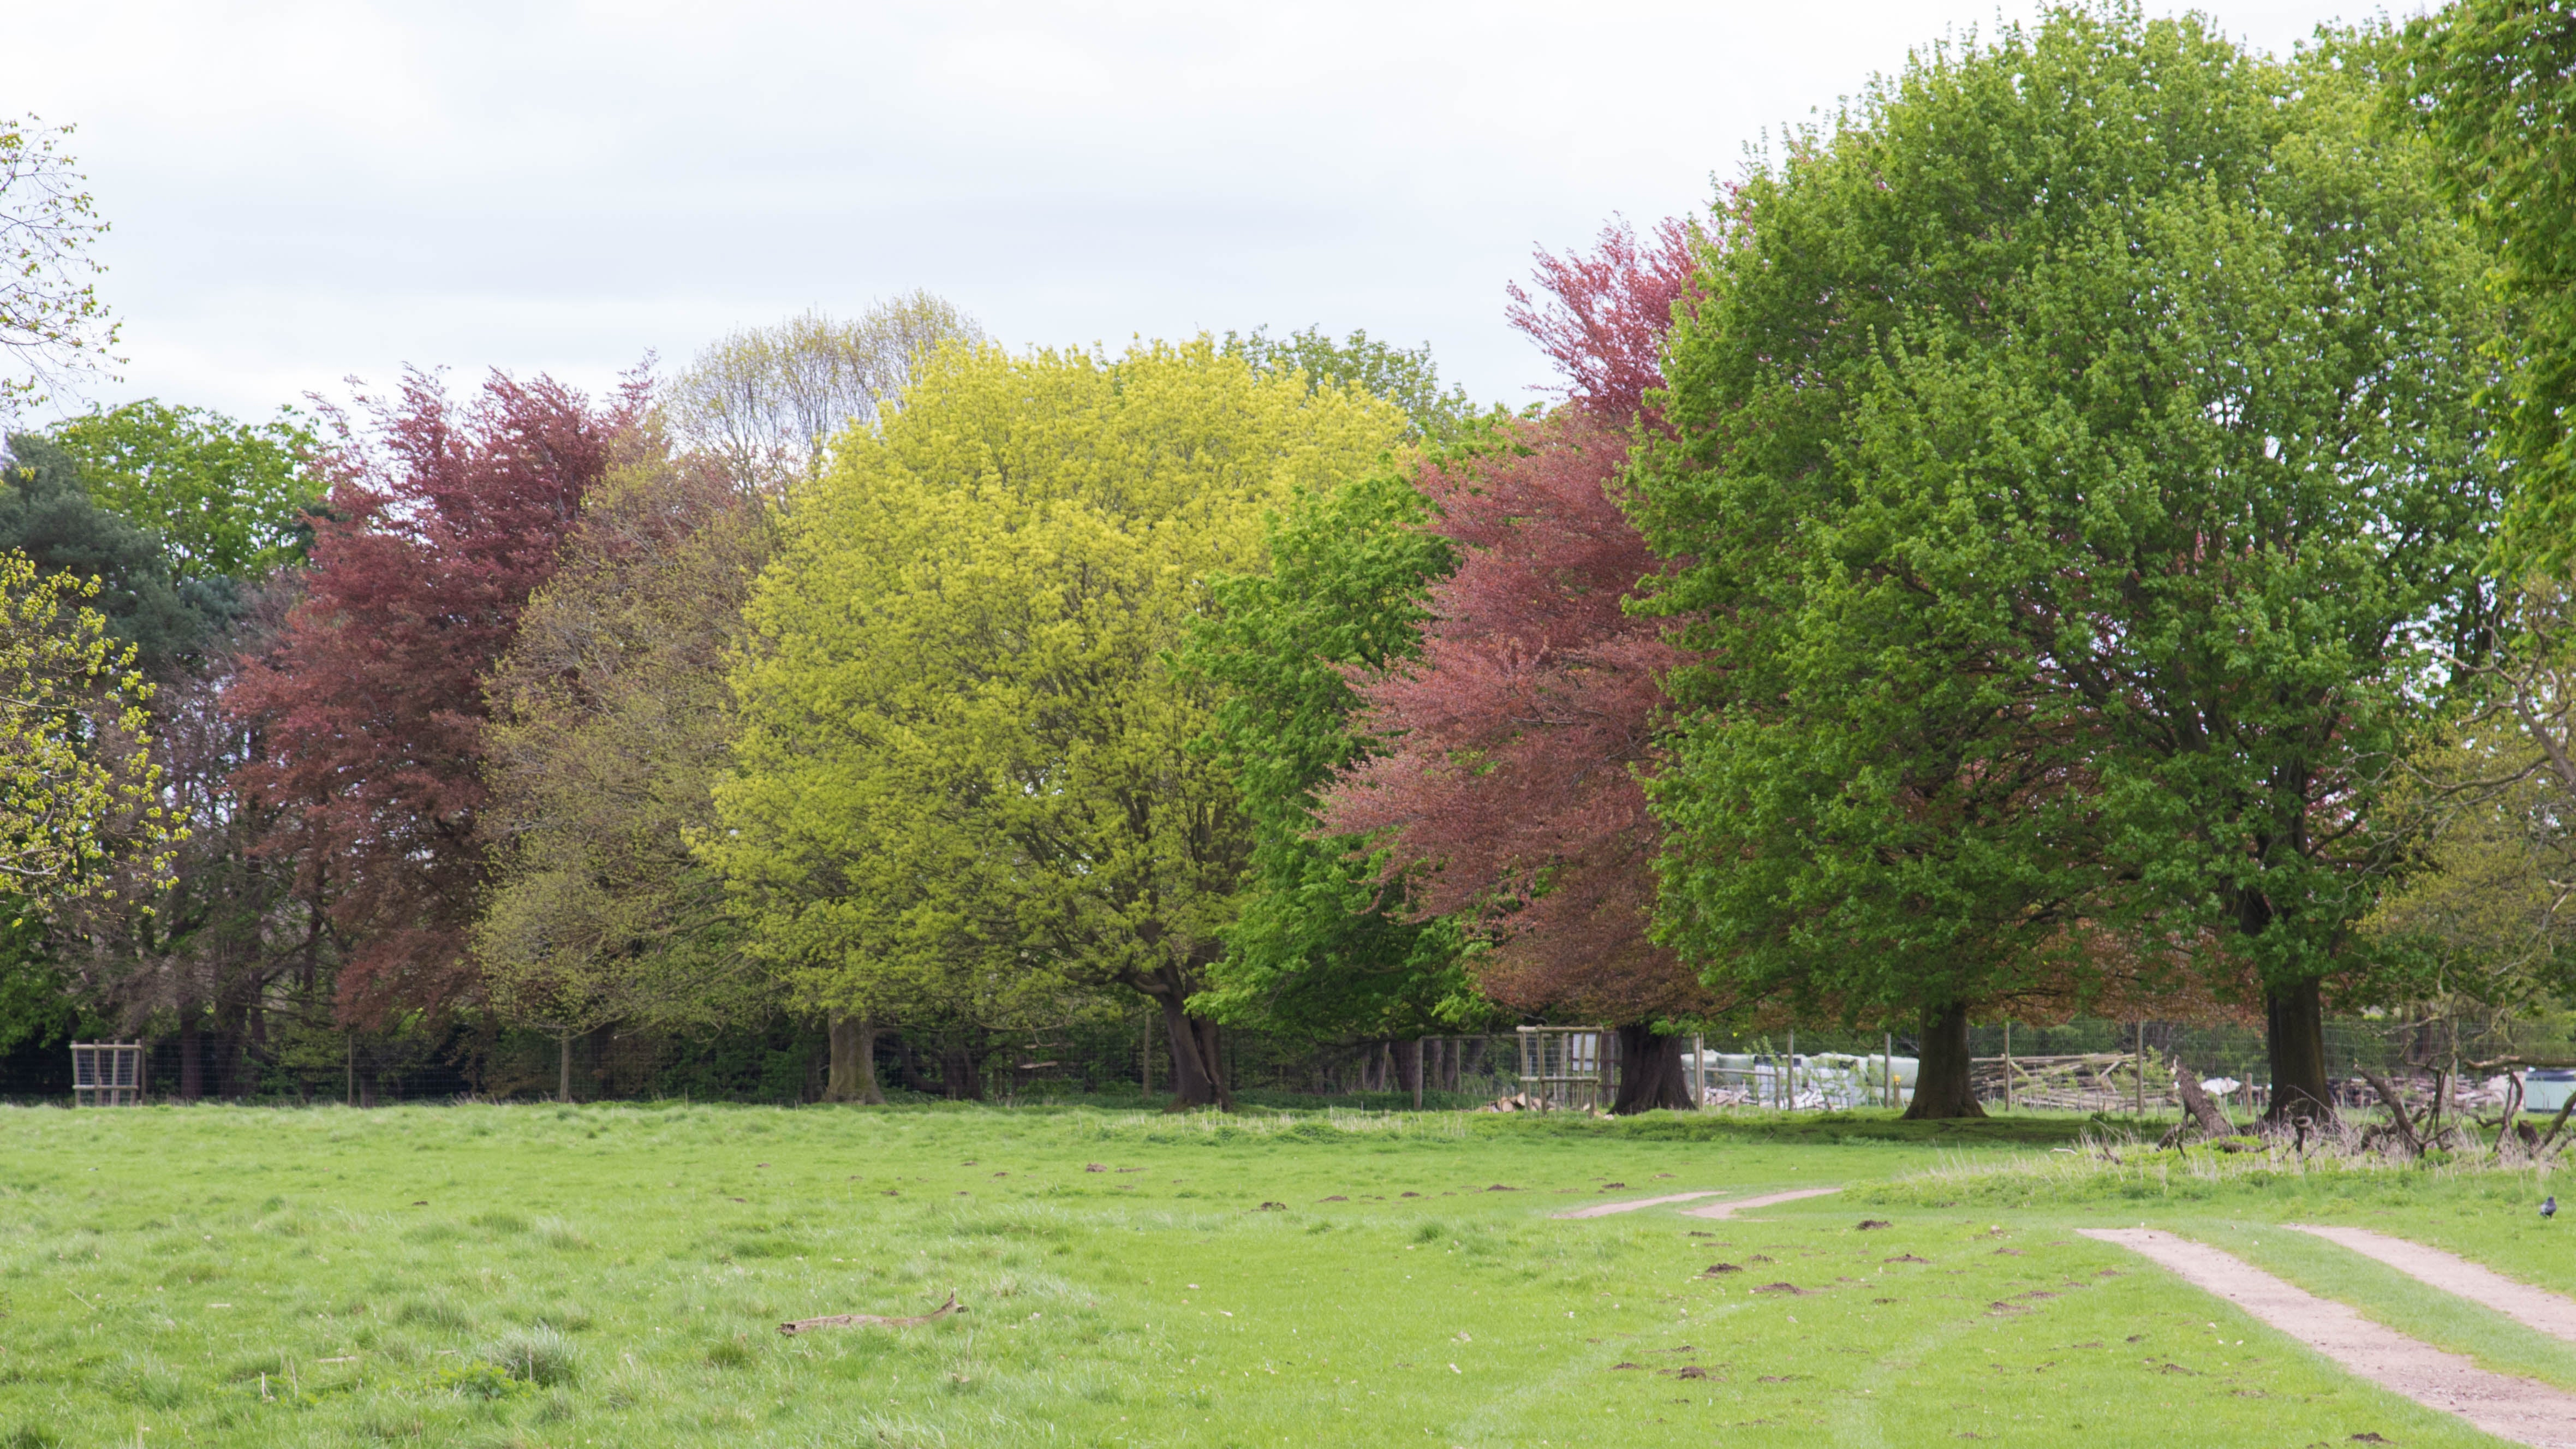 Charlecote Park's trees are a colourful sight in spring, not just autumn